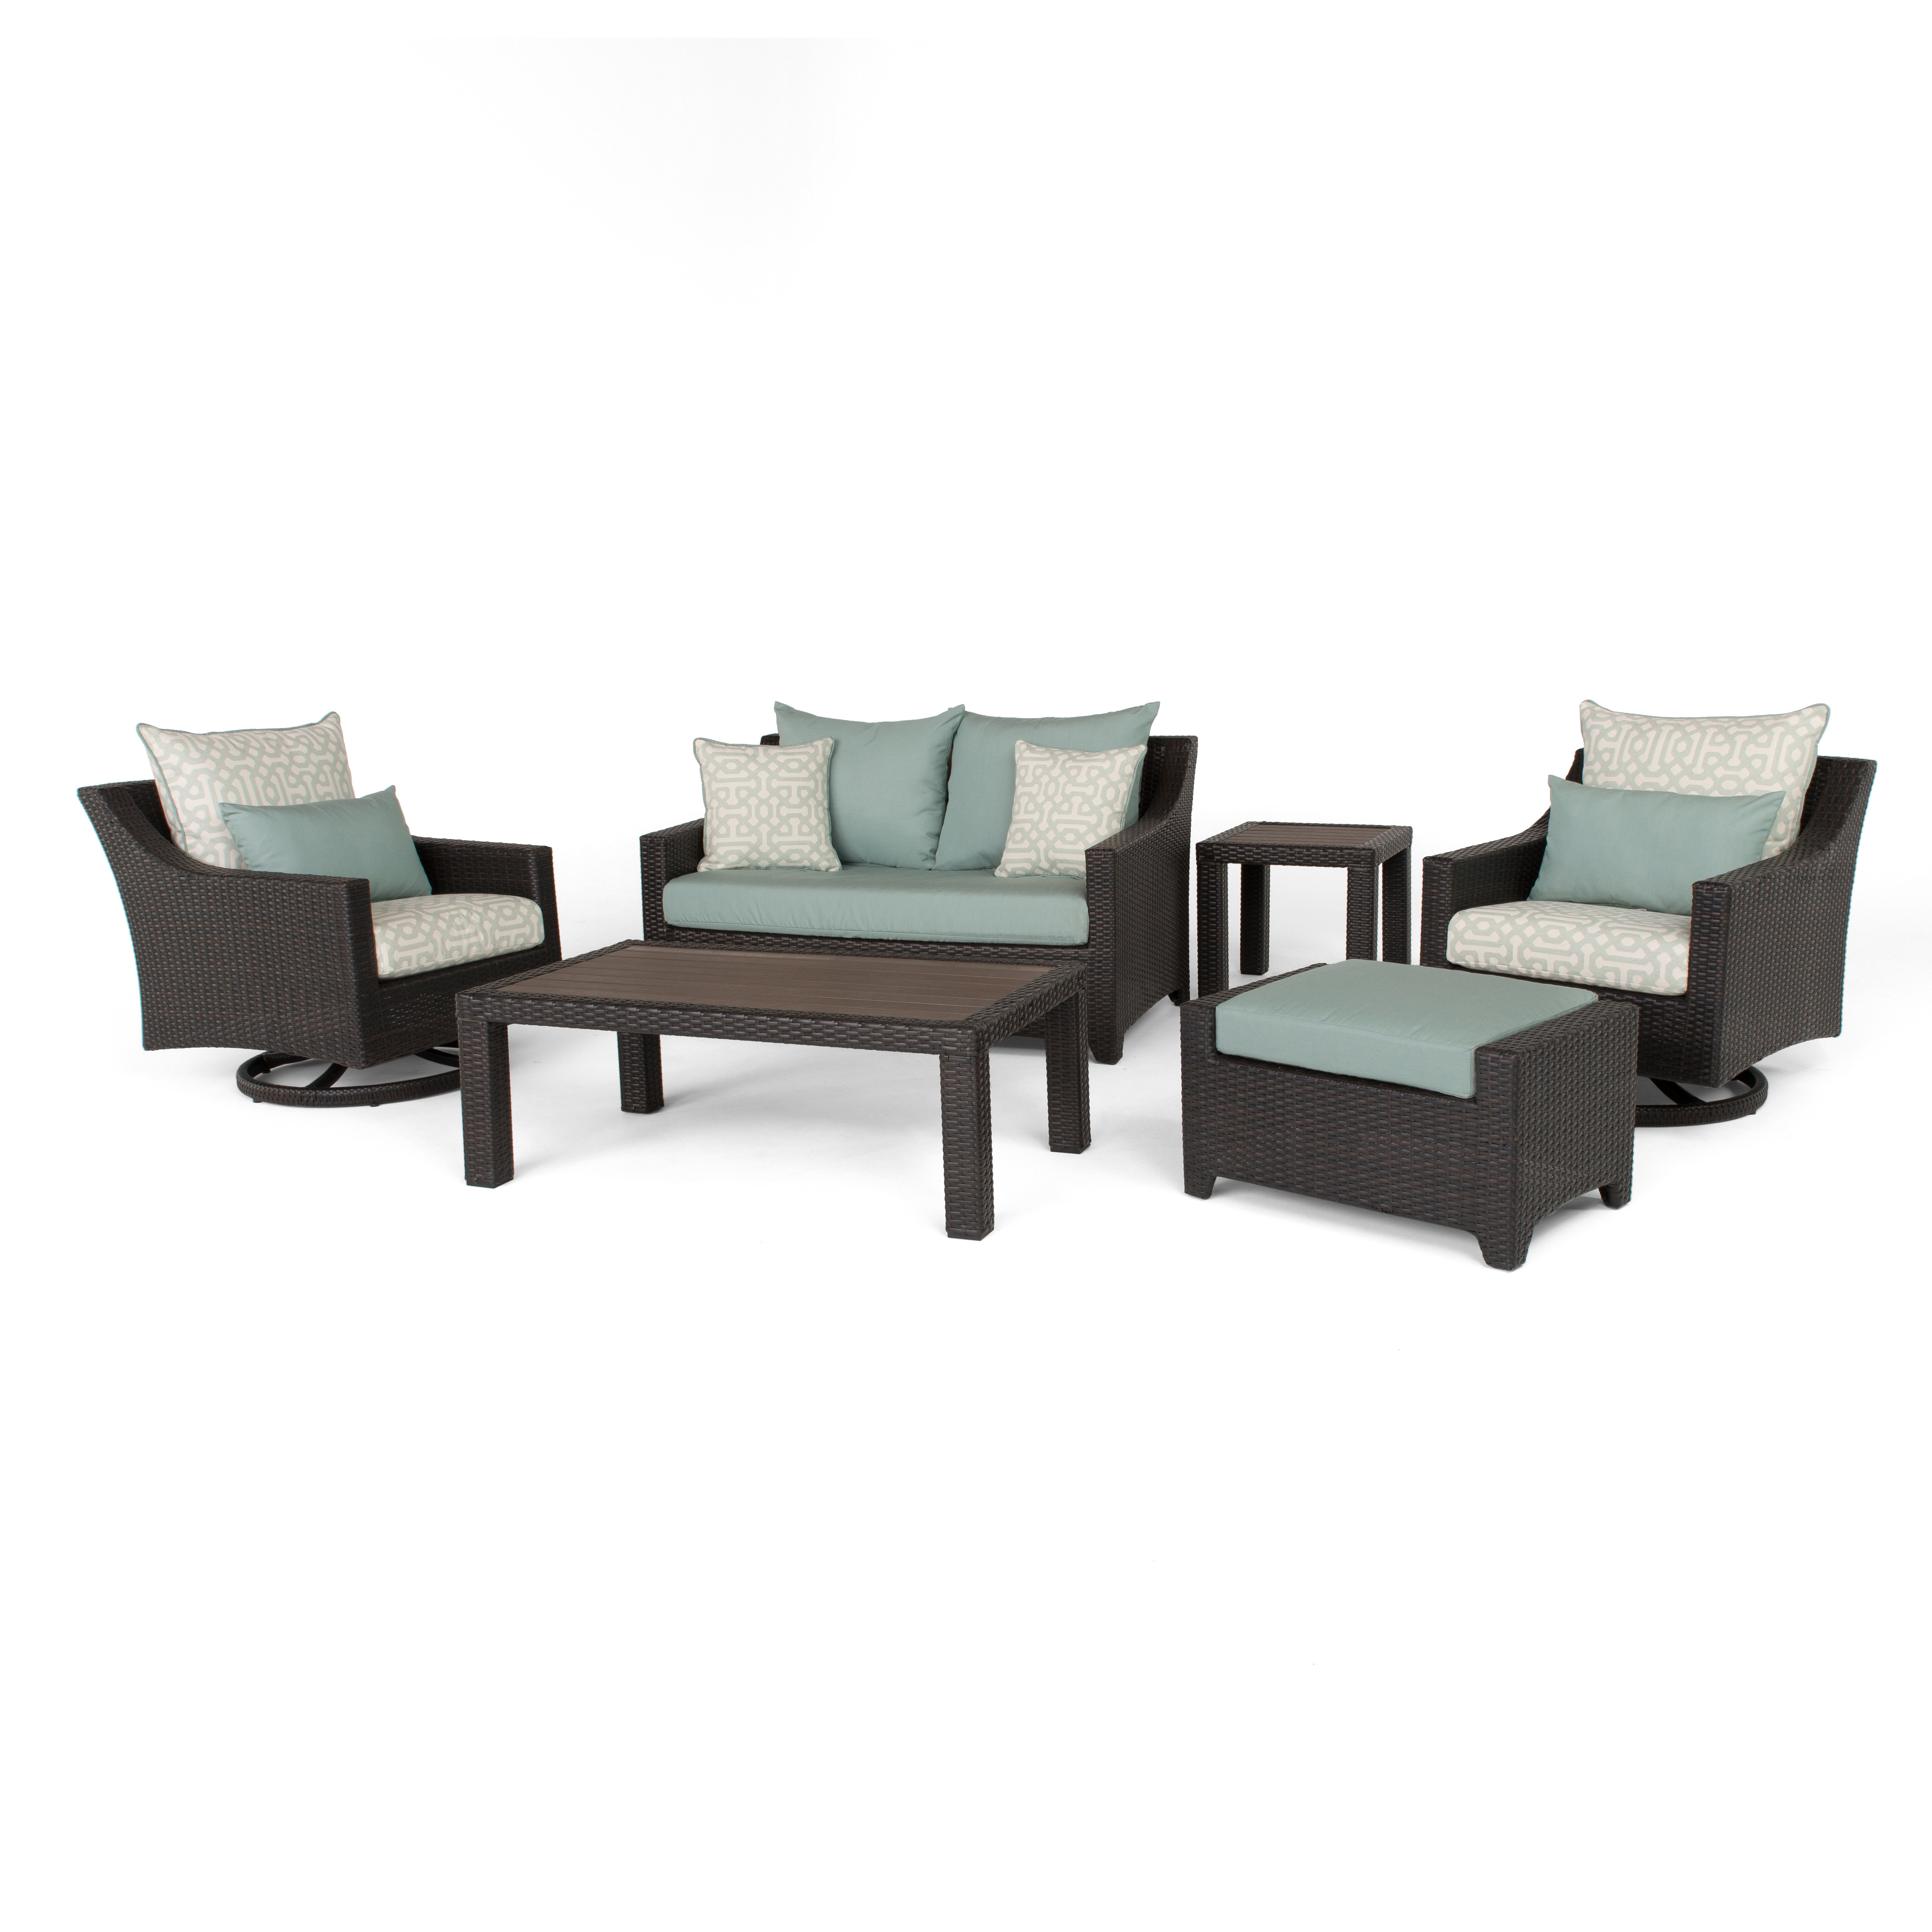 Most Recent Northridge 6 Piece Sunbrella Sofa Set With Cushions Throughout Northridge Patio Sofas With Sunbrella Cushions (View 6 of 20)